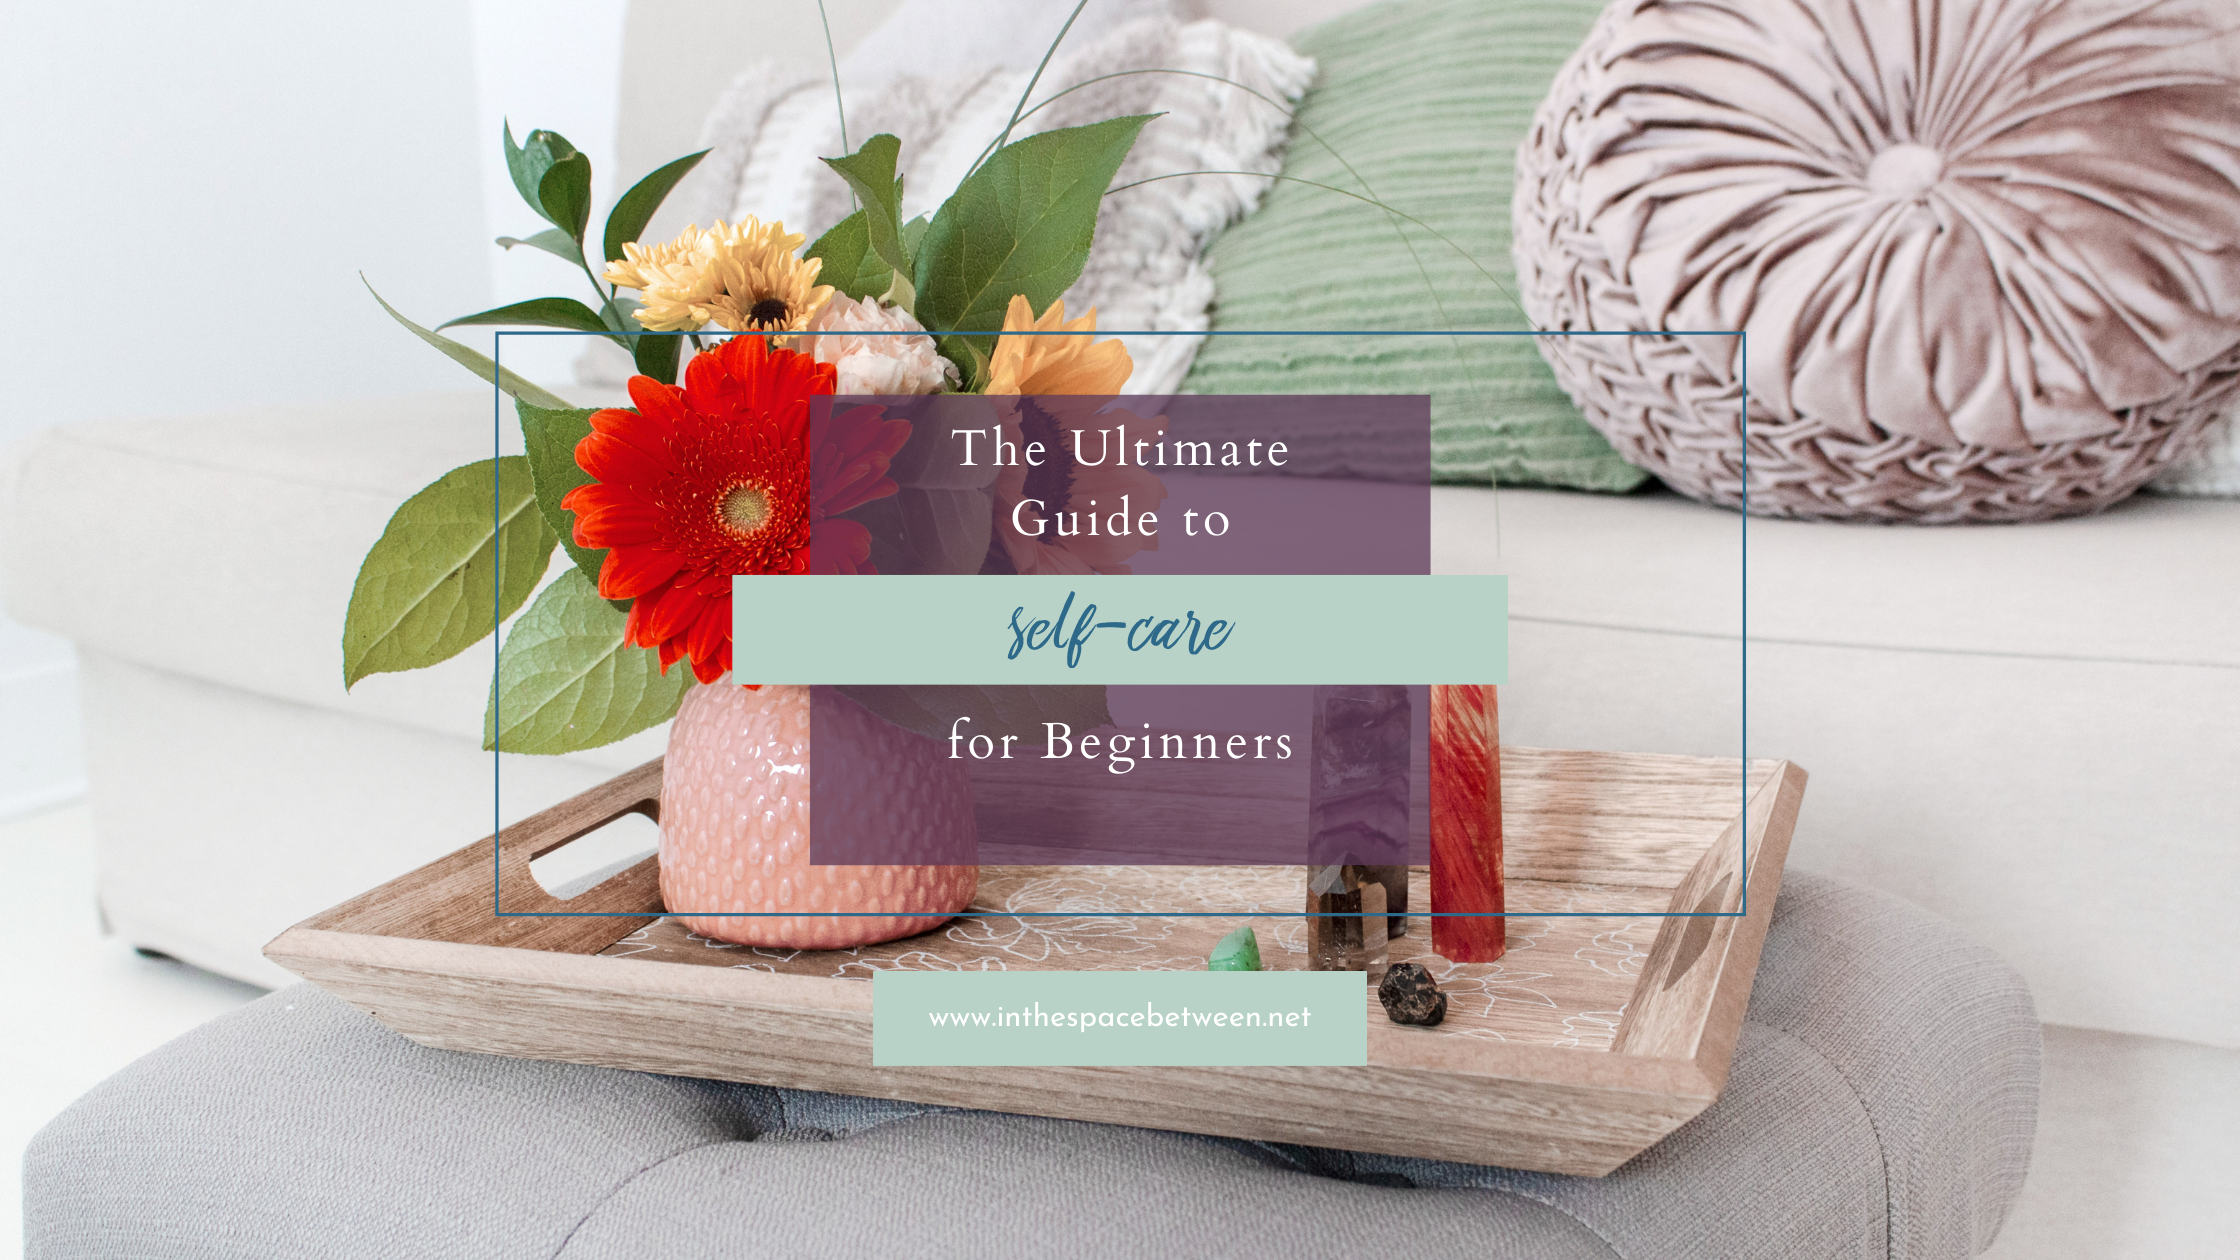 The Ultimate Guide to Self-Care for Beginners